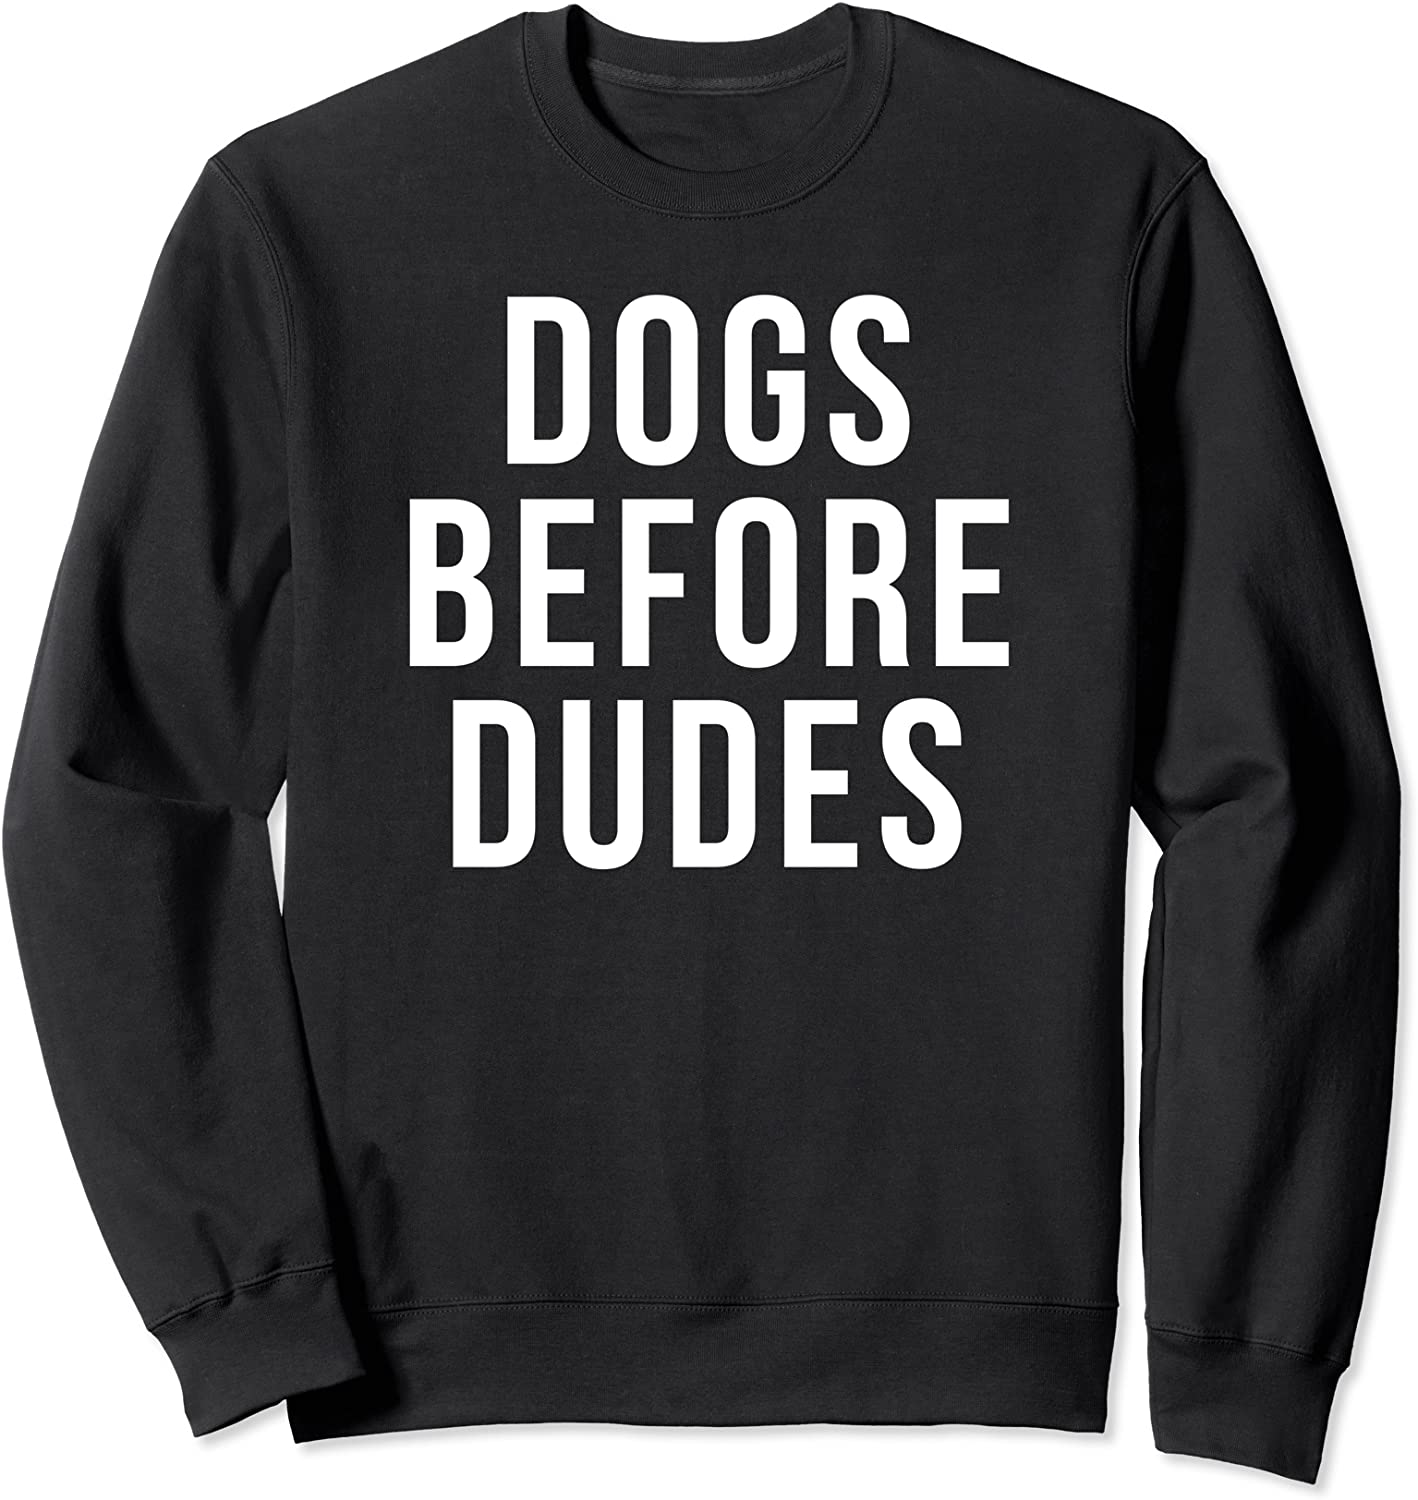 Dogs Before Cheap mail order sales Dudes Sweatshirt Sale SALE% OFF